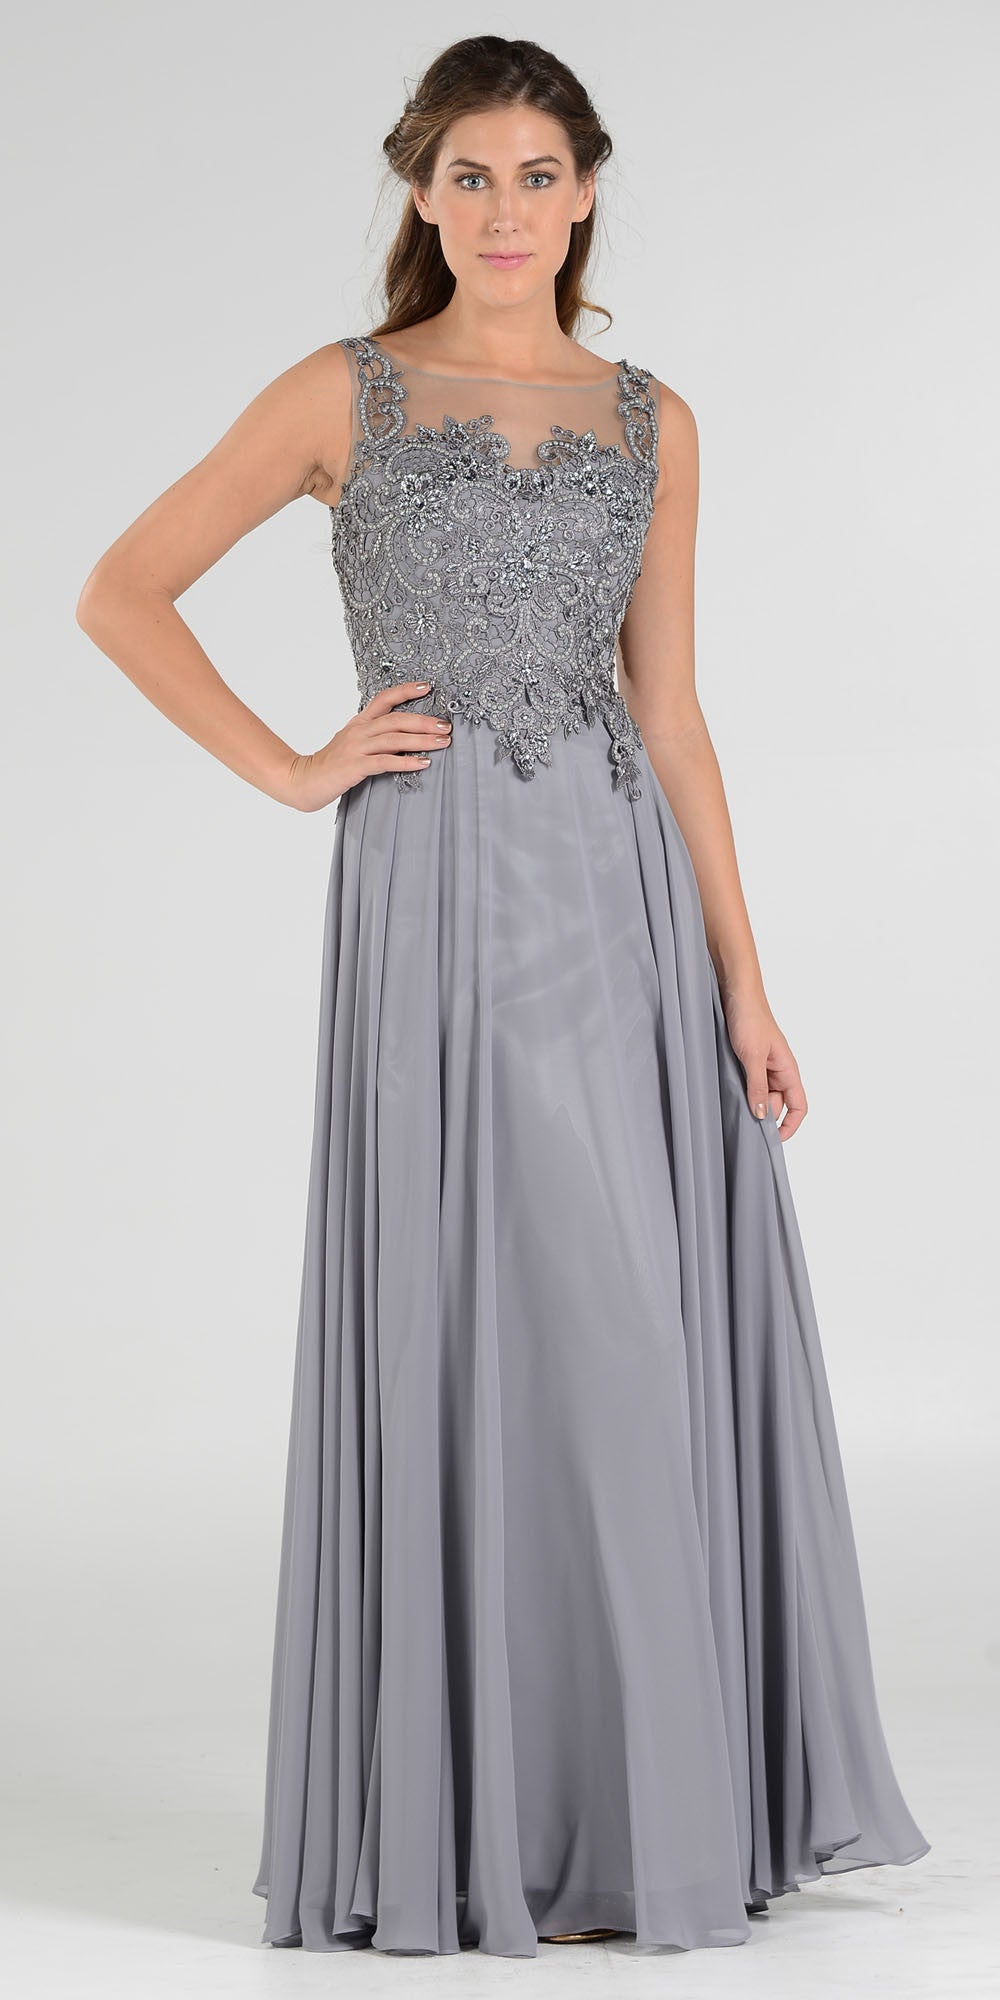 Appliqued Illusion Bodice Silver Long Formal Dress Sleeveless